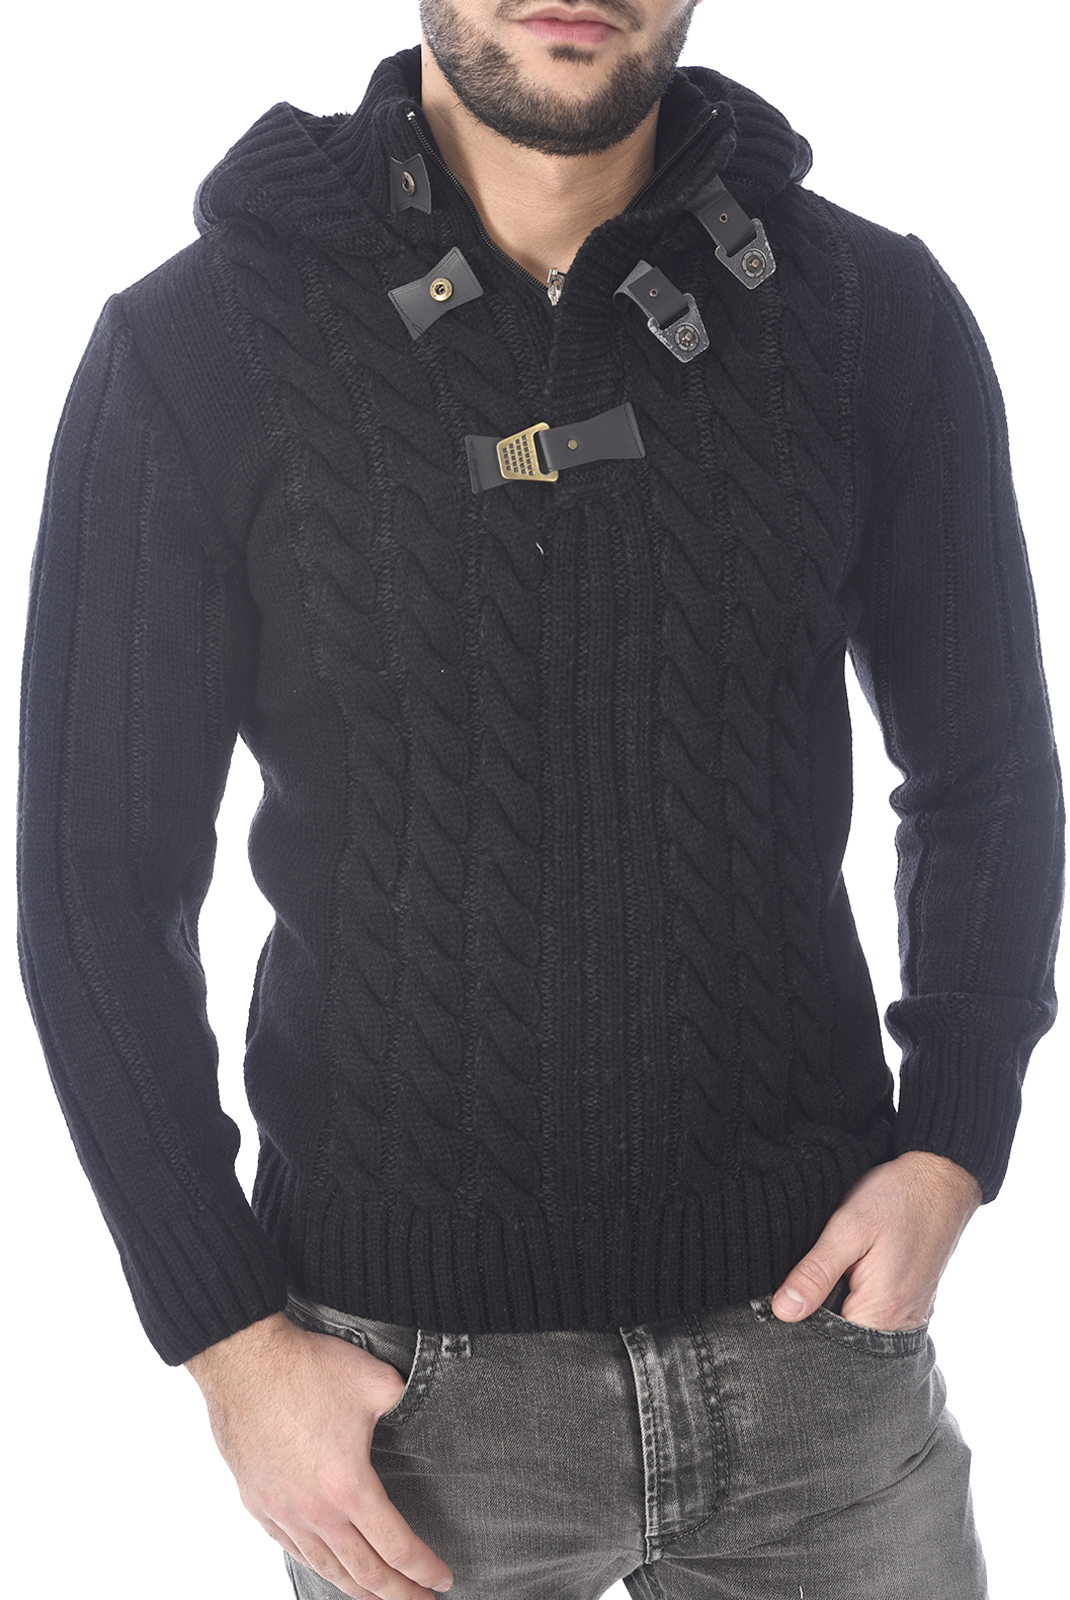 Pulls  Goldenim paris 2321 NOIR